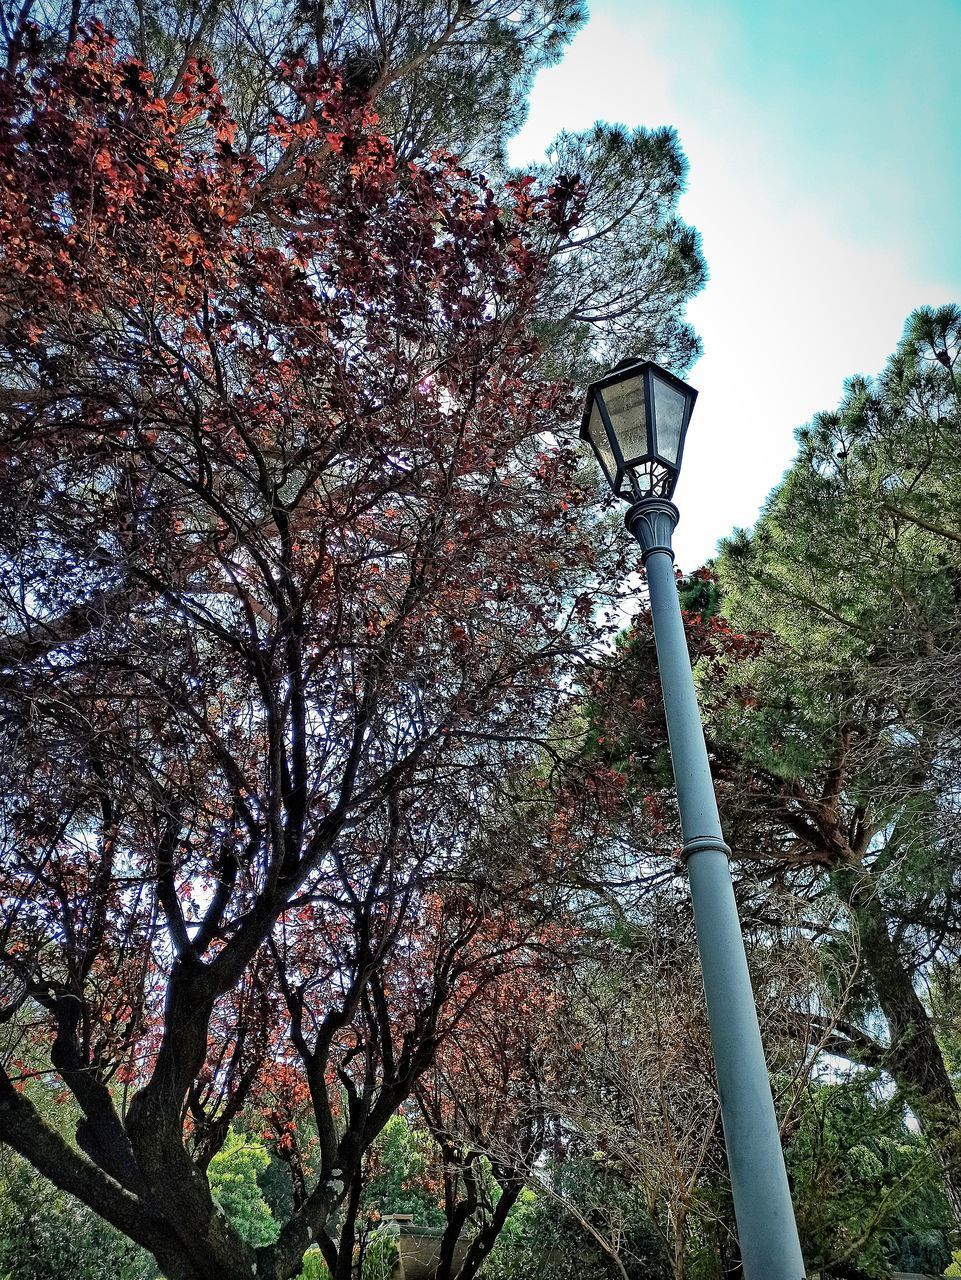 LOW ANGLE VIEW OF STREET LIGHT ON TREE